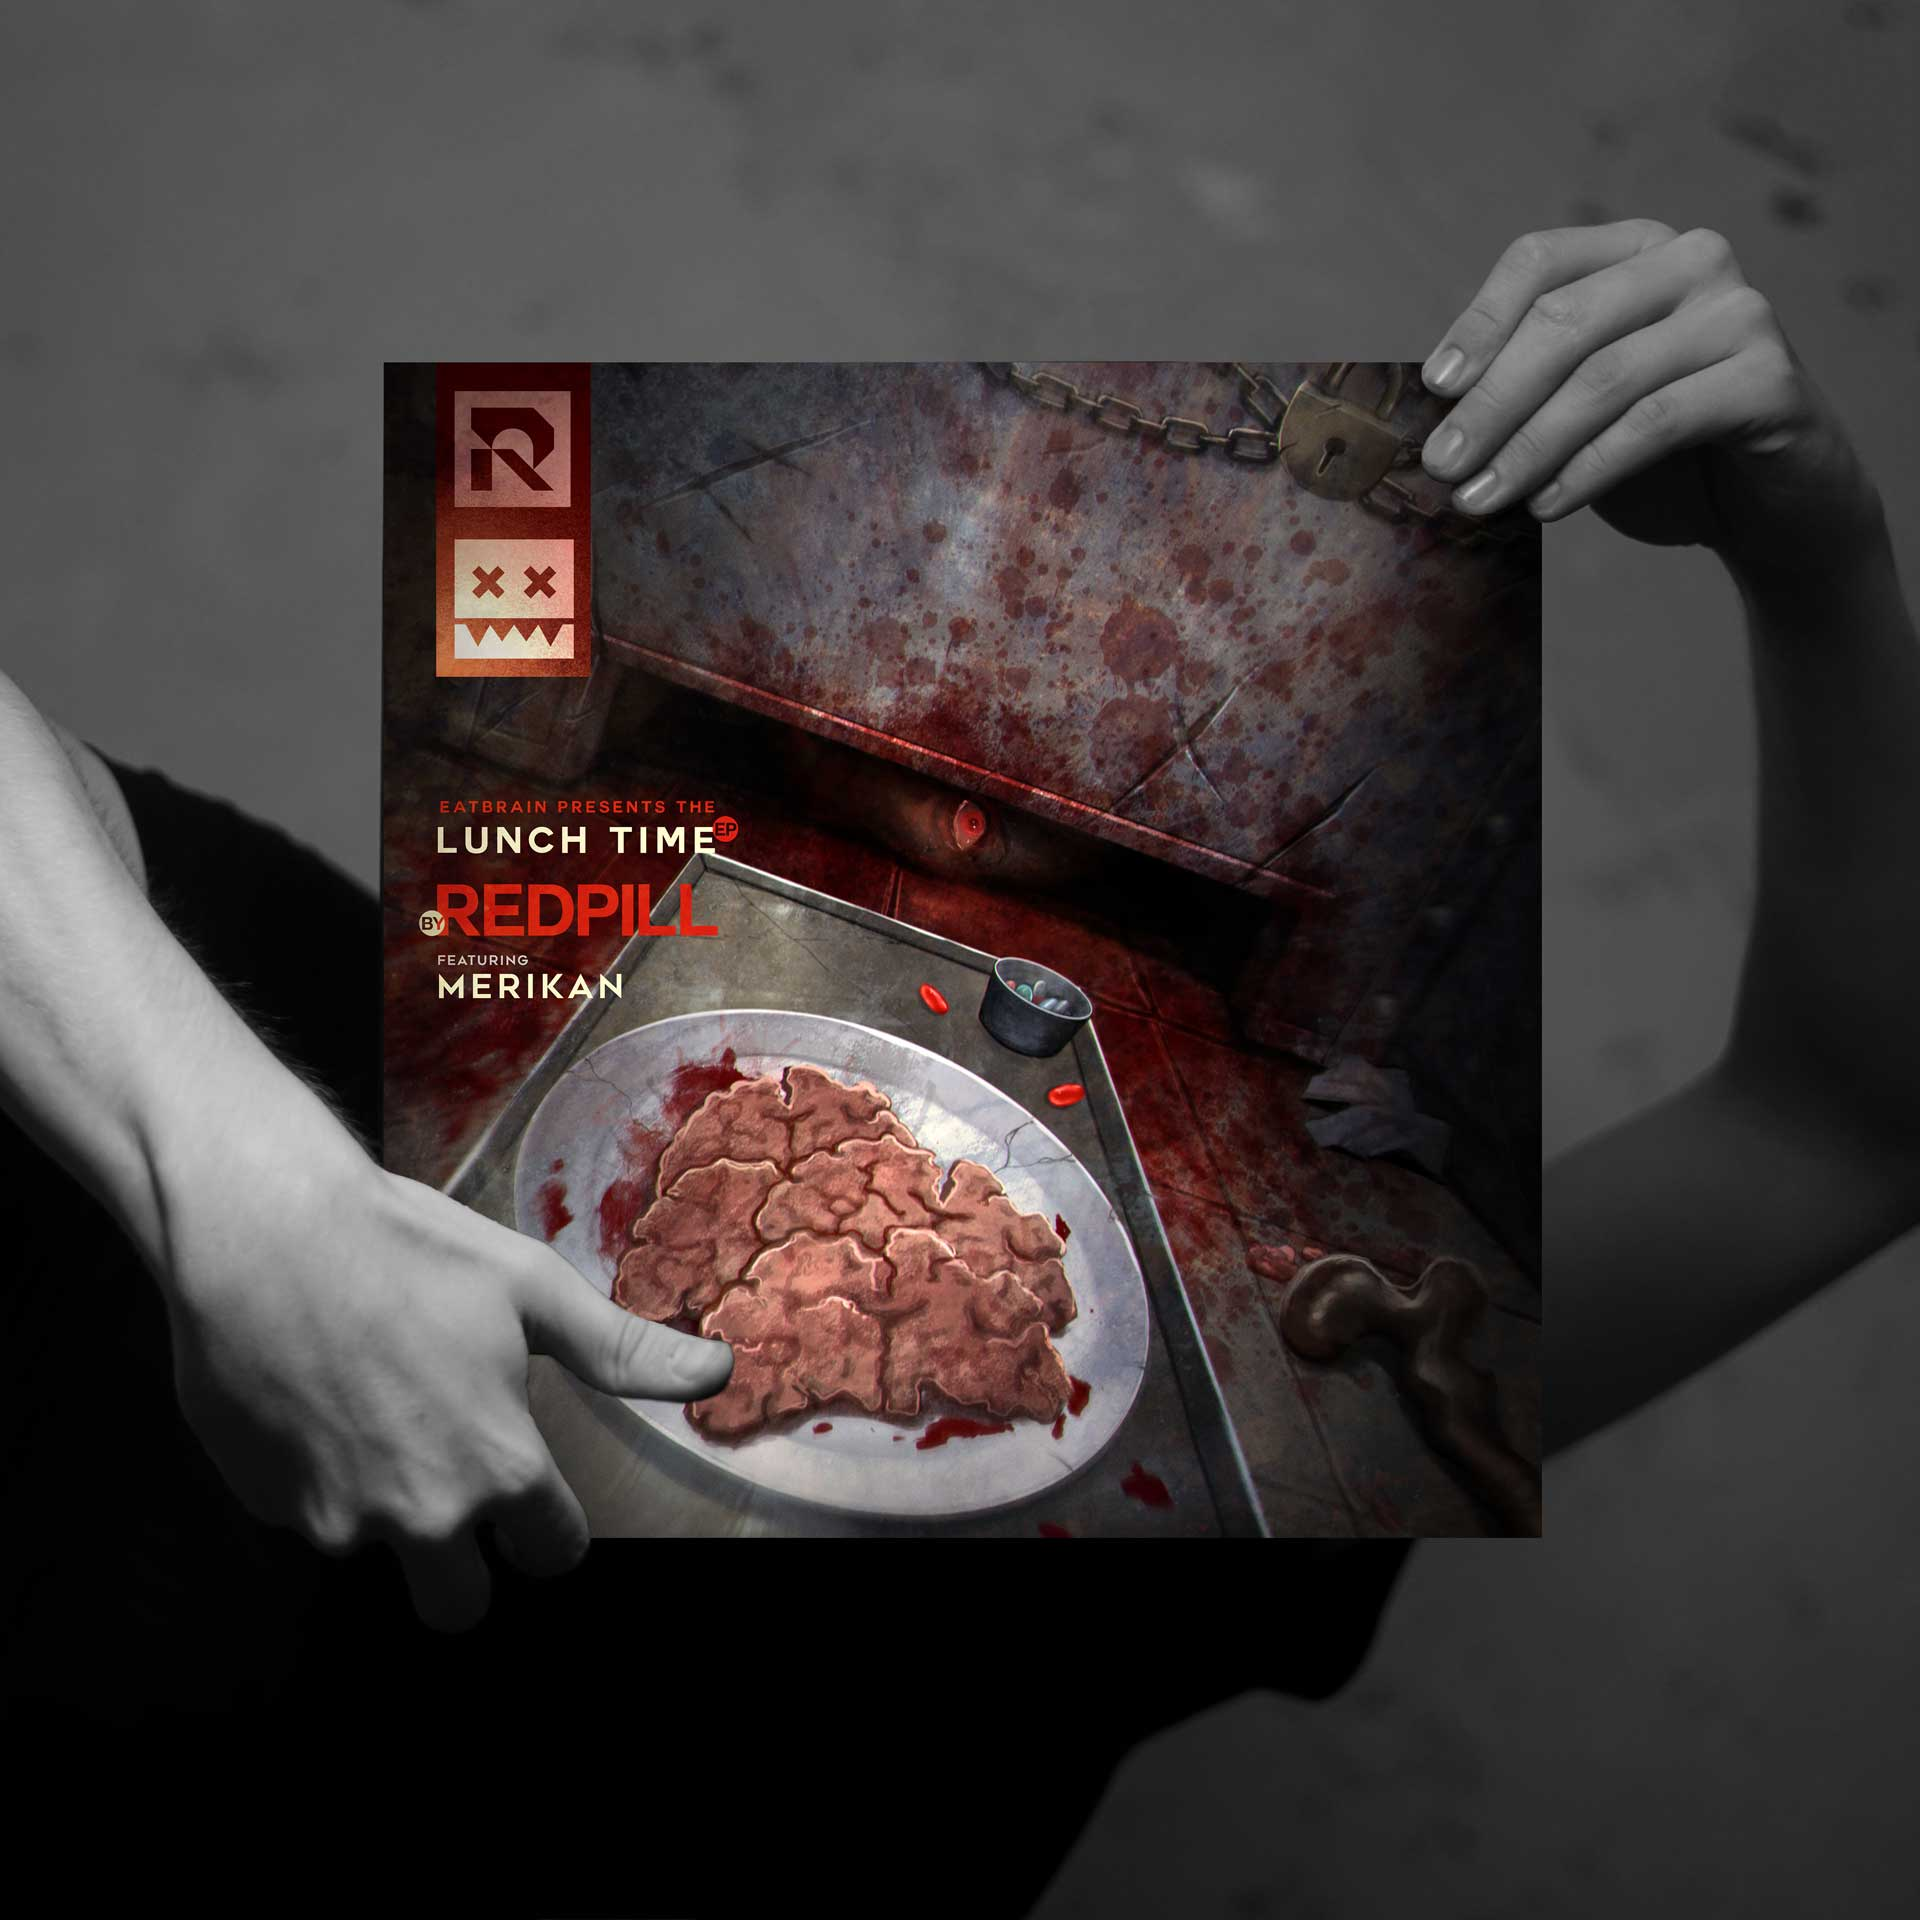 Umuts Selektion der Woche 014 • Redpill – Lunch Time EP [EATBRAIN070]